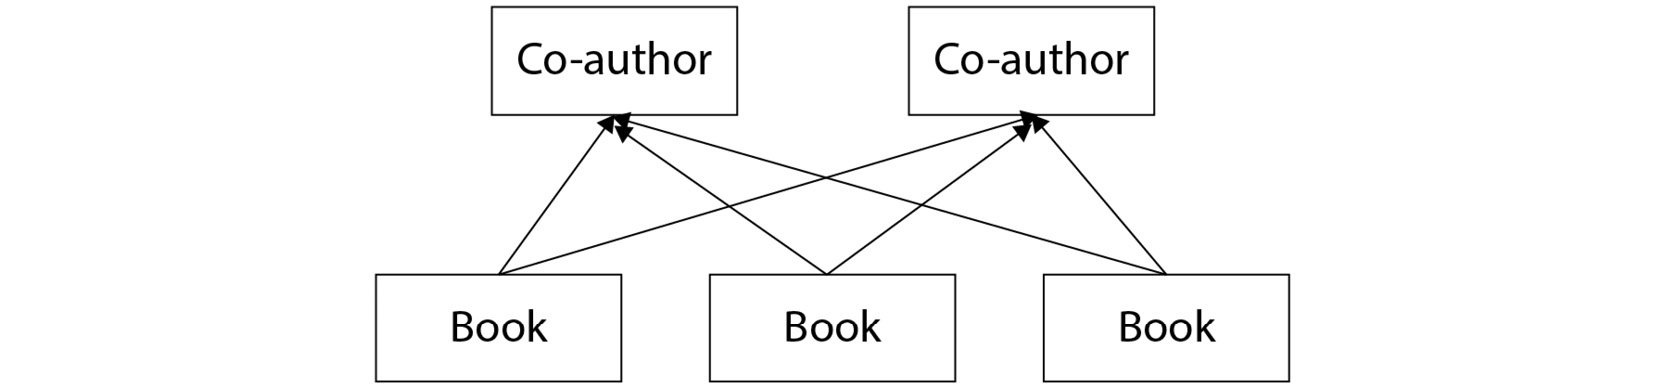 Figure 2.15: Many-to-many relationship between books and co-authors